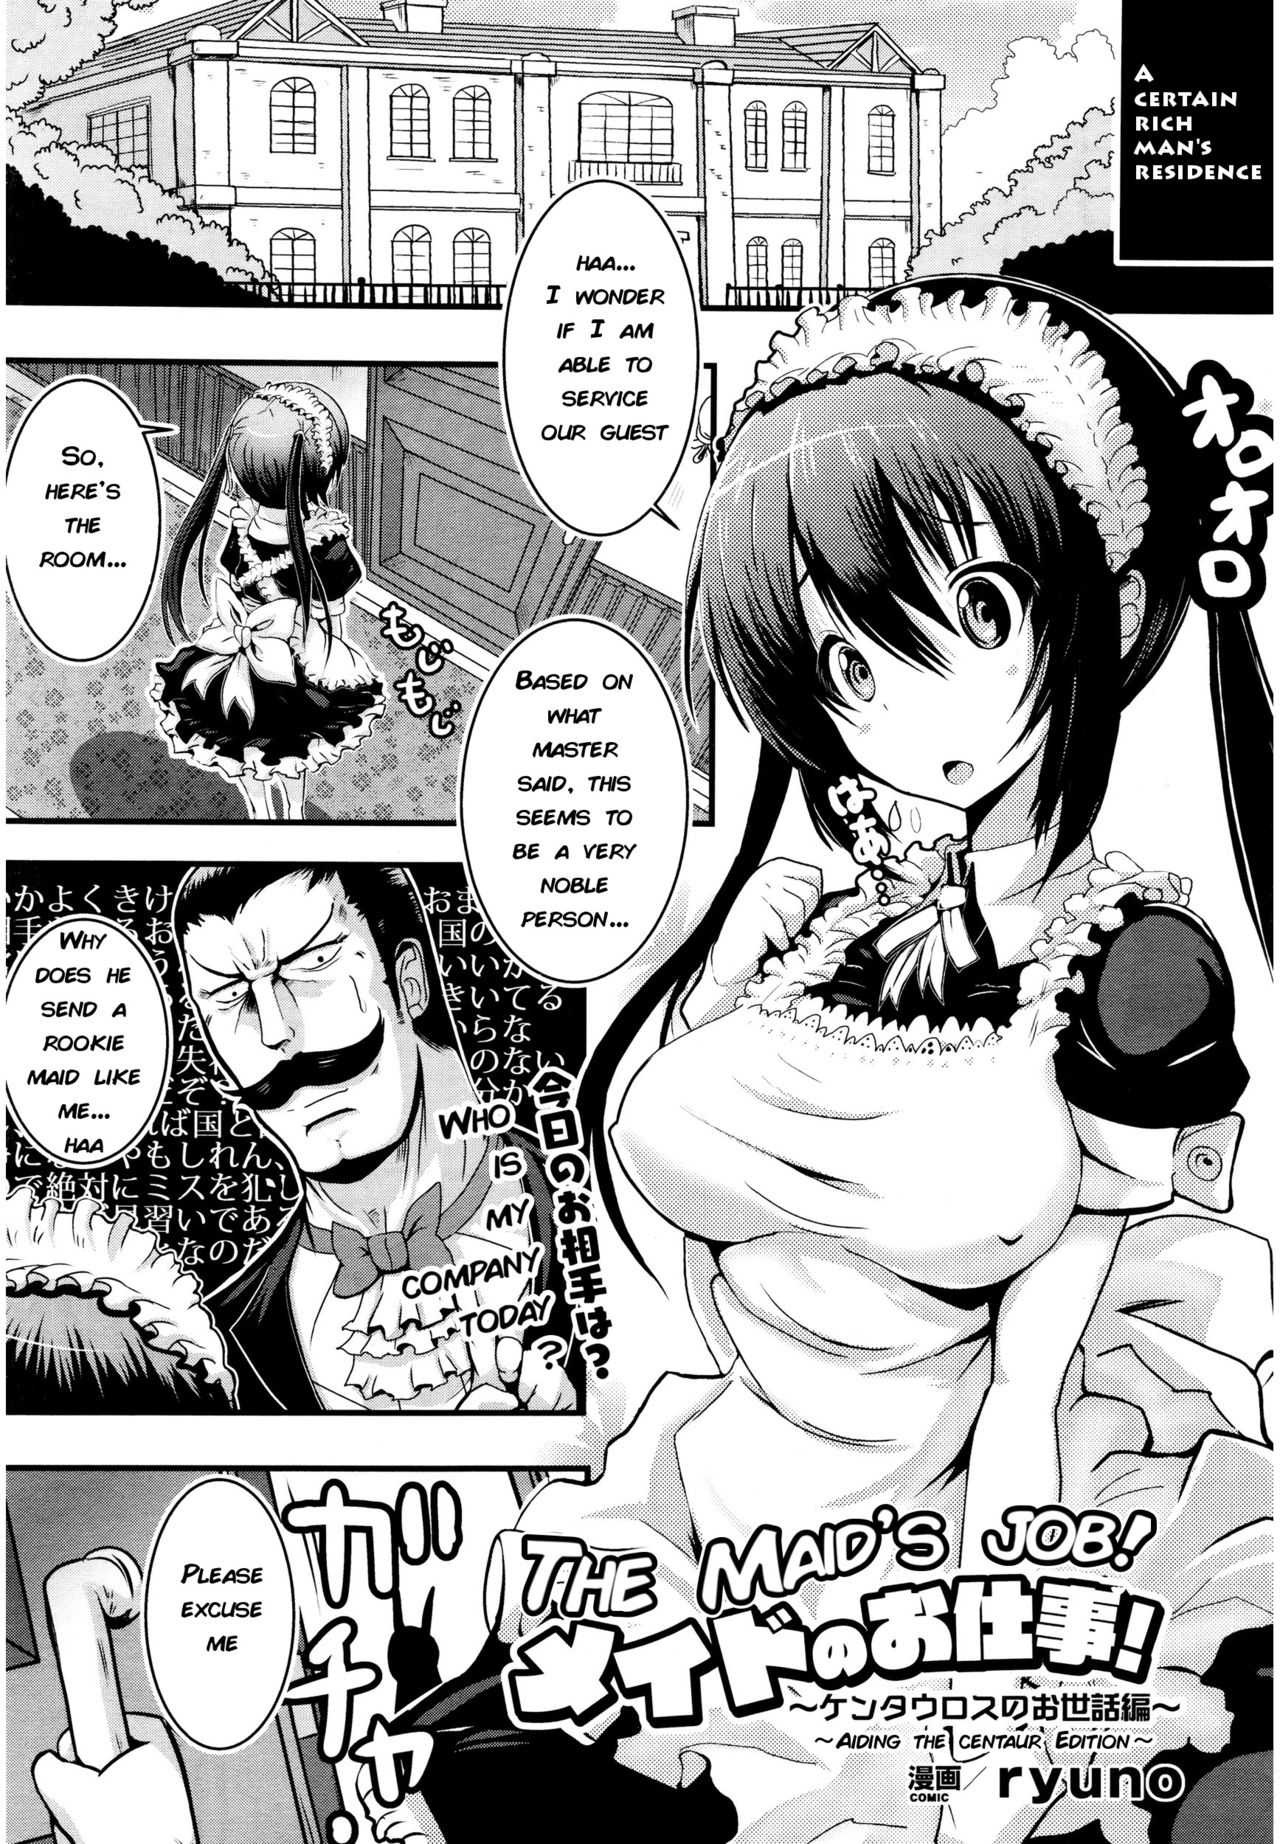 Monster hentai manga cartoon slut